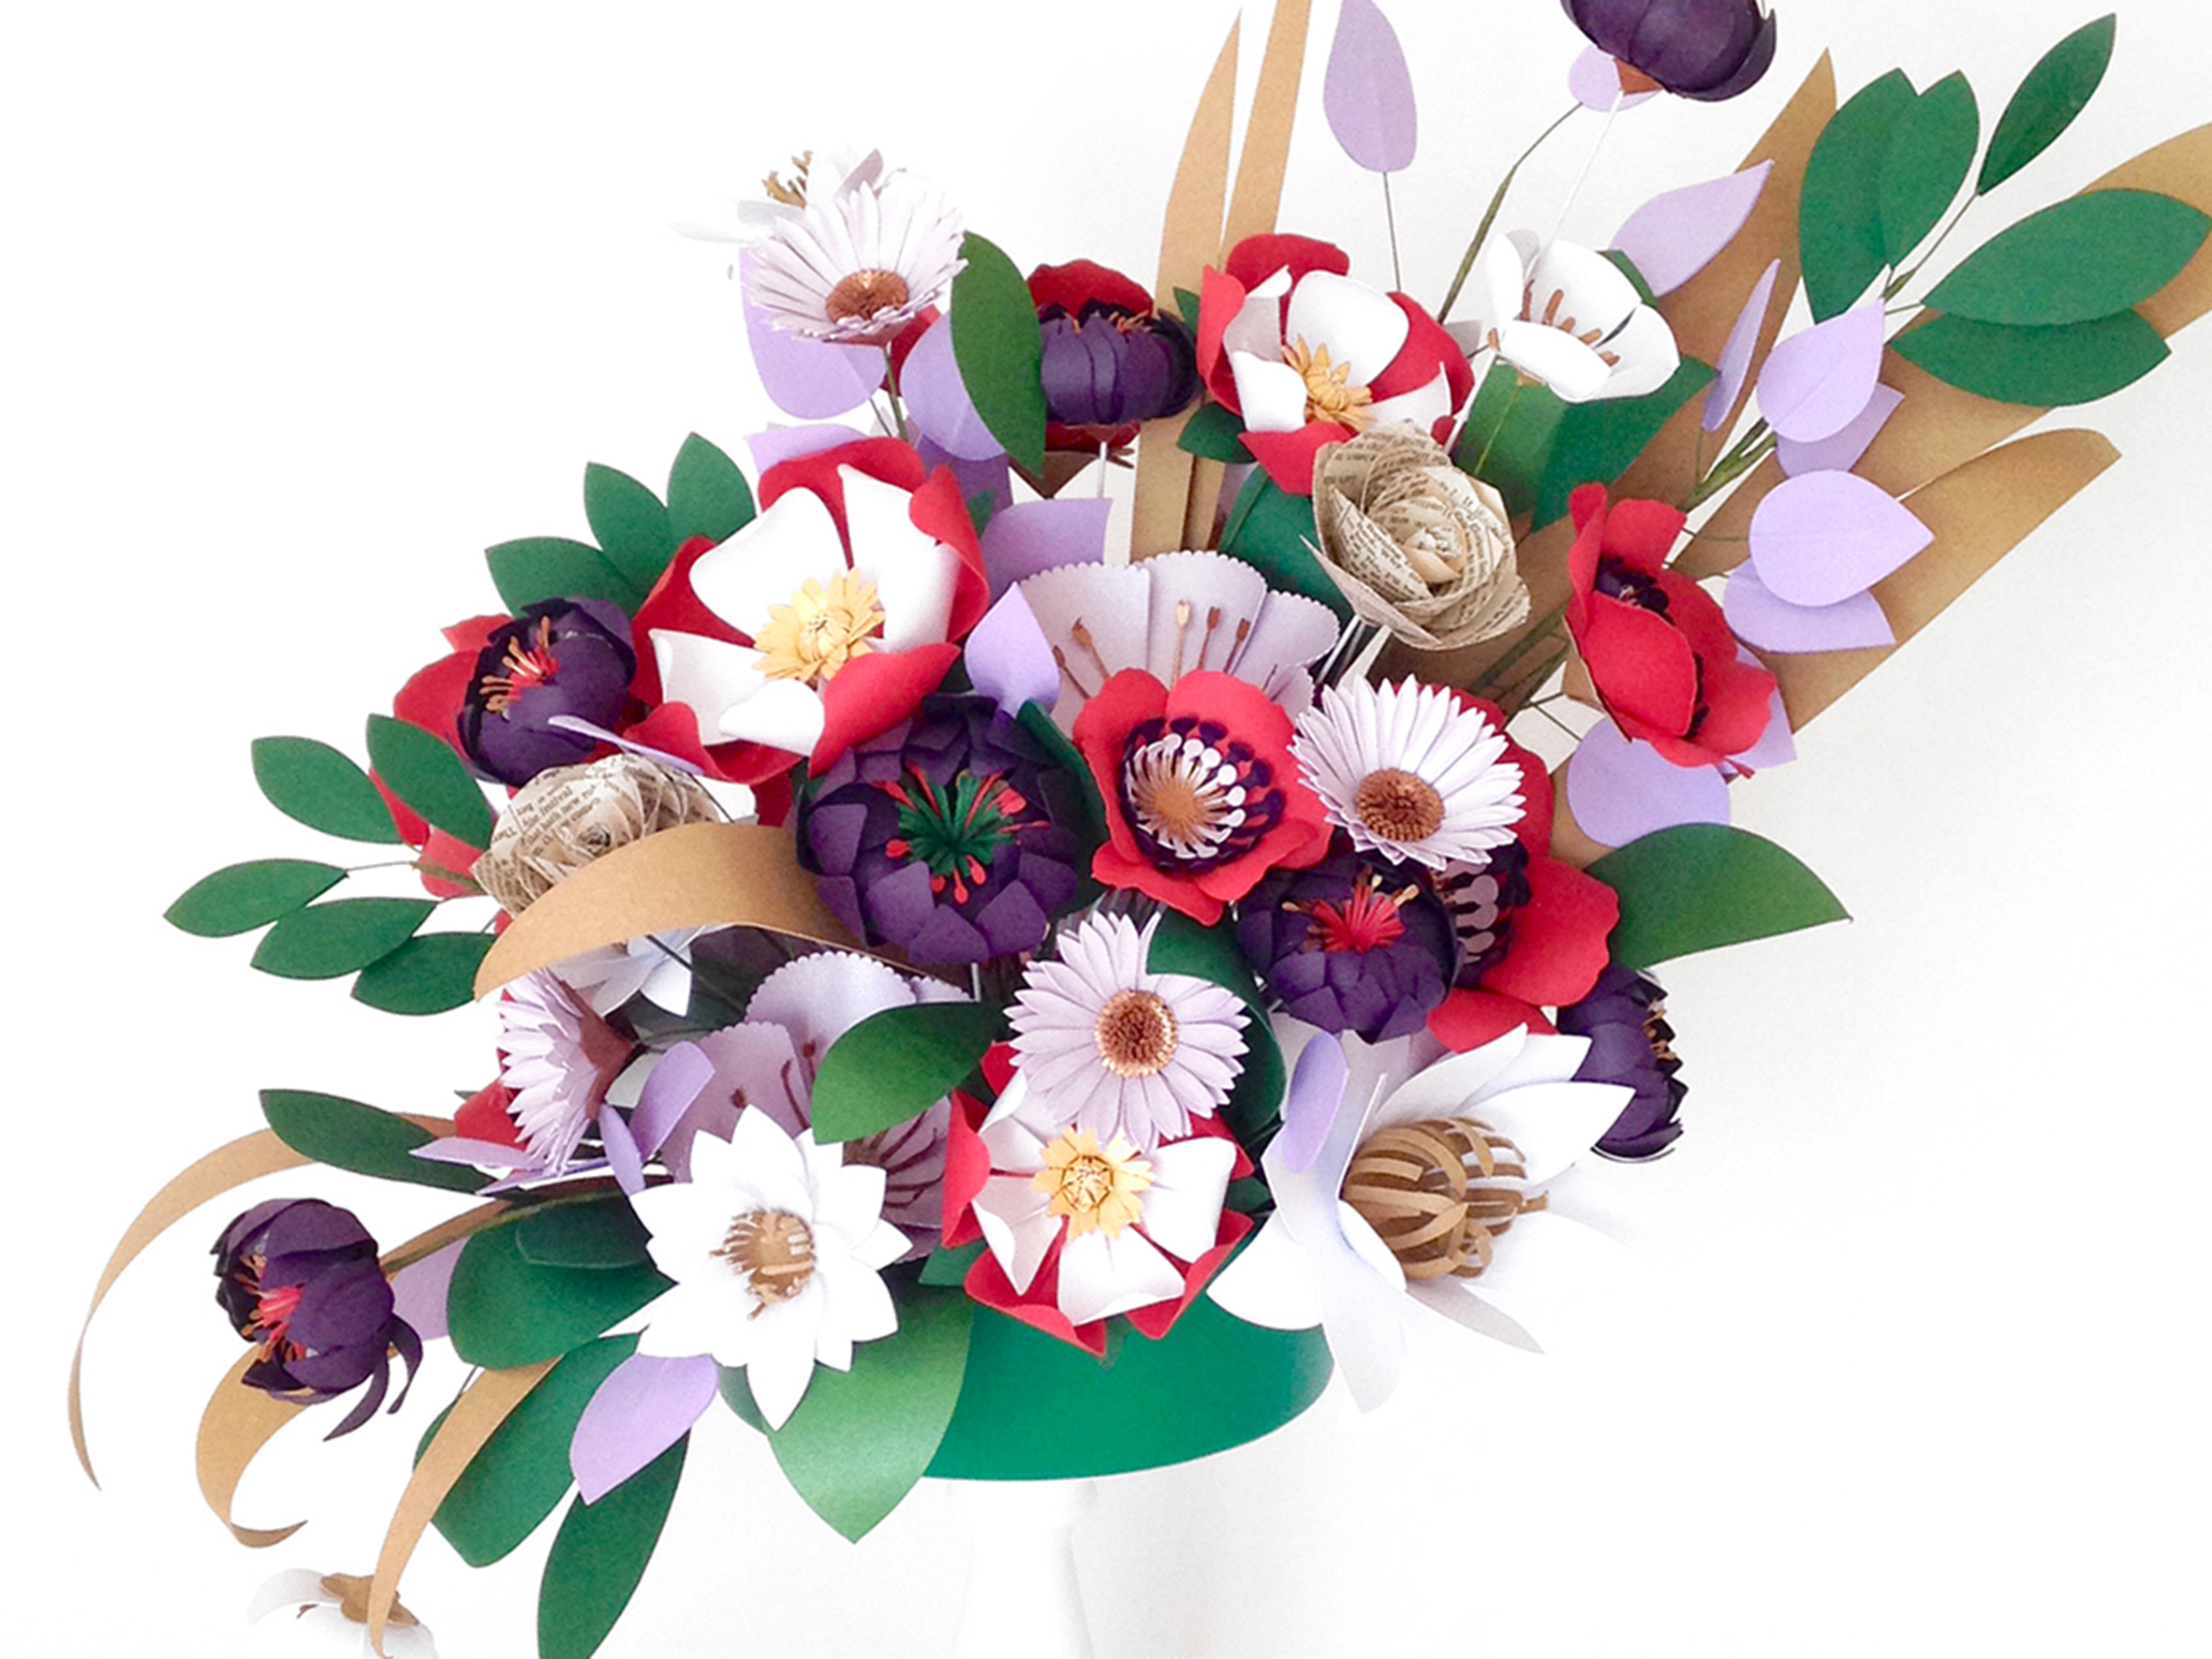 A show piece paper flower arrangement